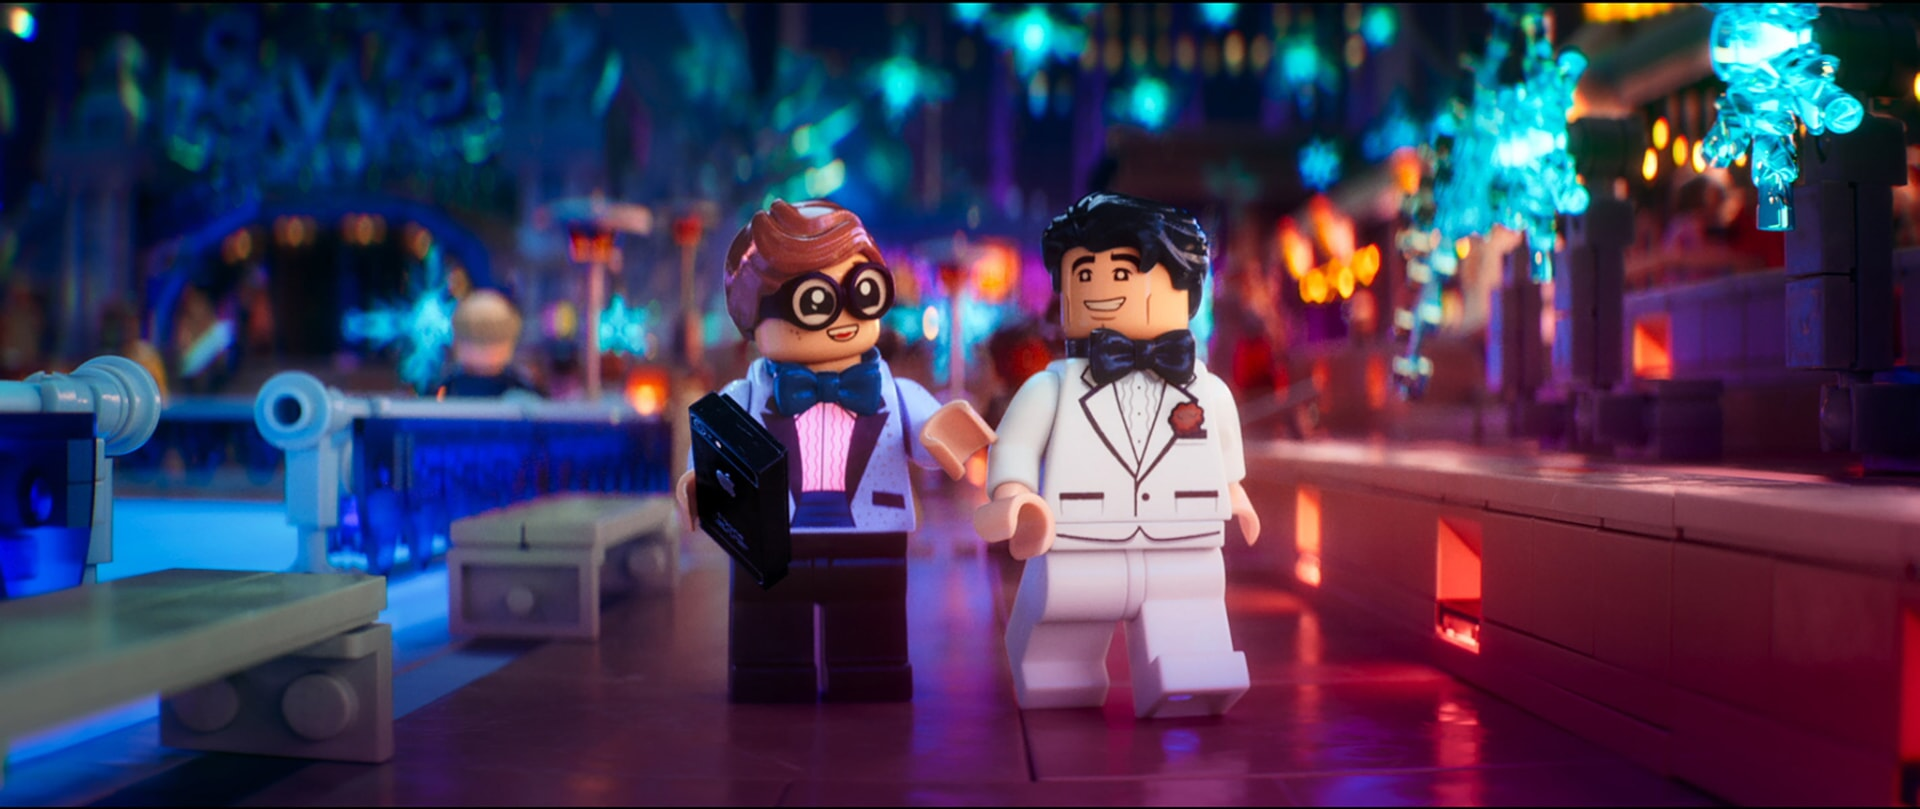 "(L-R) LEGO® minifigures Dick Grayson (MICHAEL CERA) and Bruce Wayne (WILL ARNETT) in the animated adventure ""The LEGO Batman Movie,"""